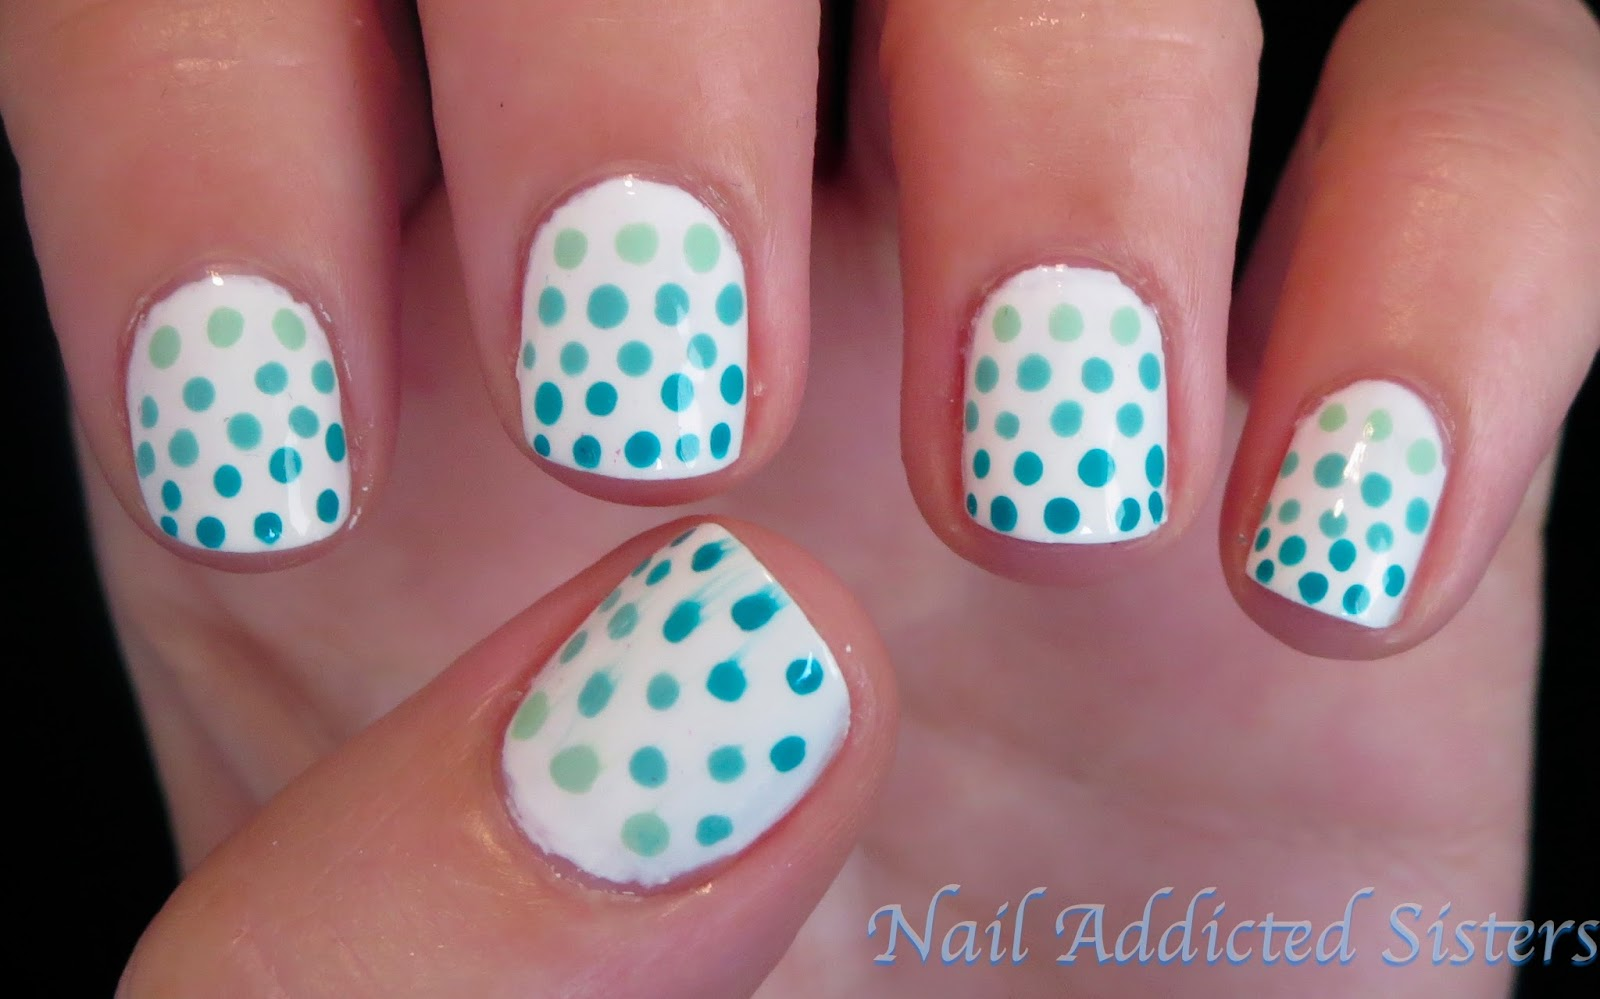 St. Patrick's Day nails- Green ombre dot nail design